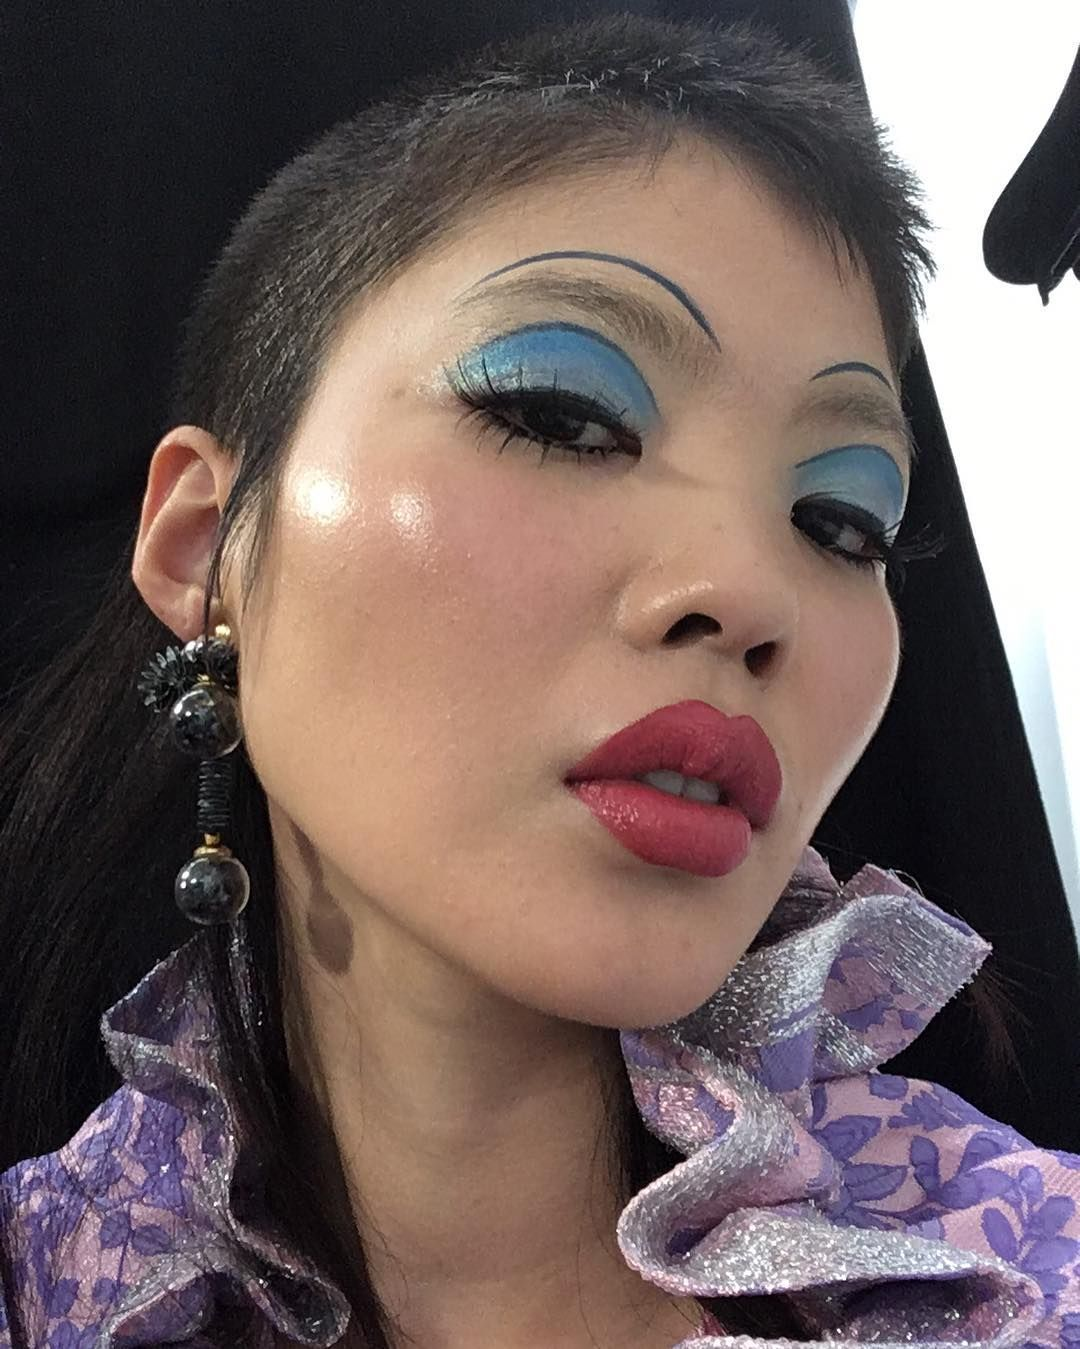 Pin by ˏˋ Ines ˊˎ on face. in 2019 Face makeup, Makeup